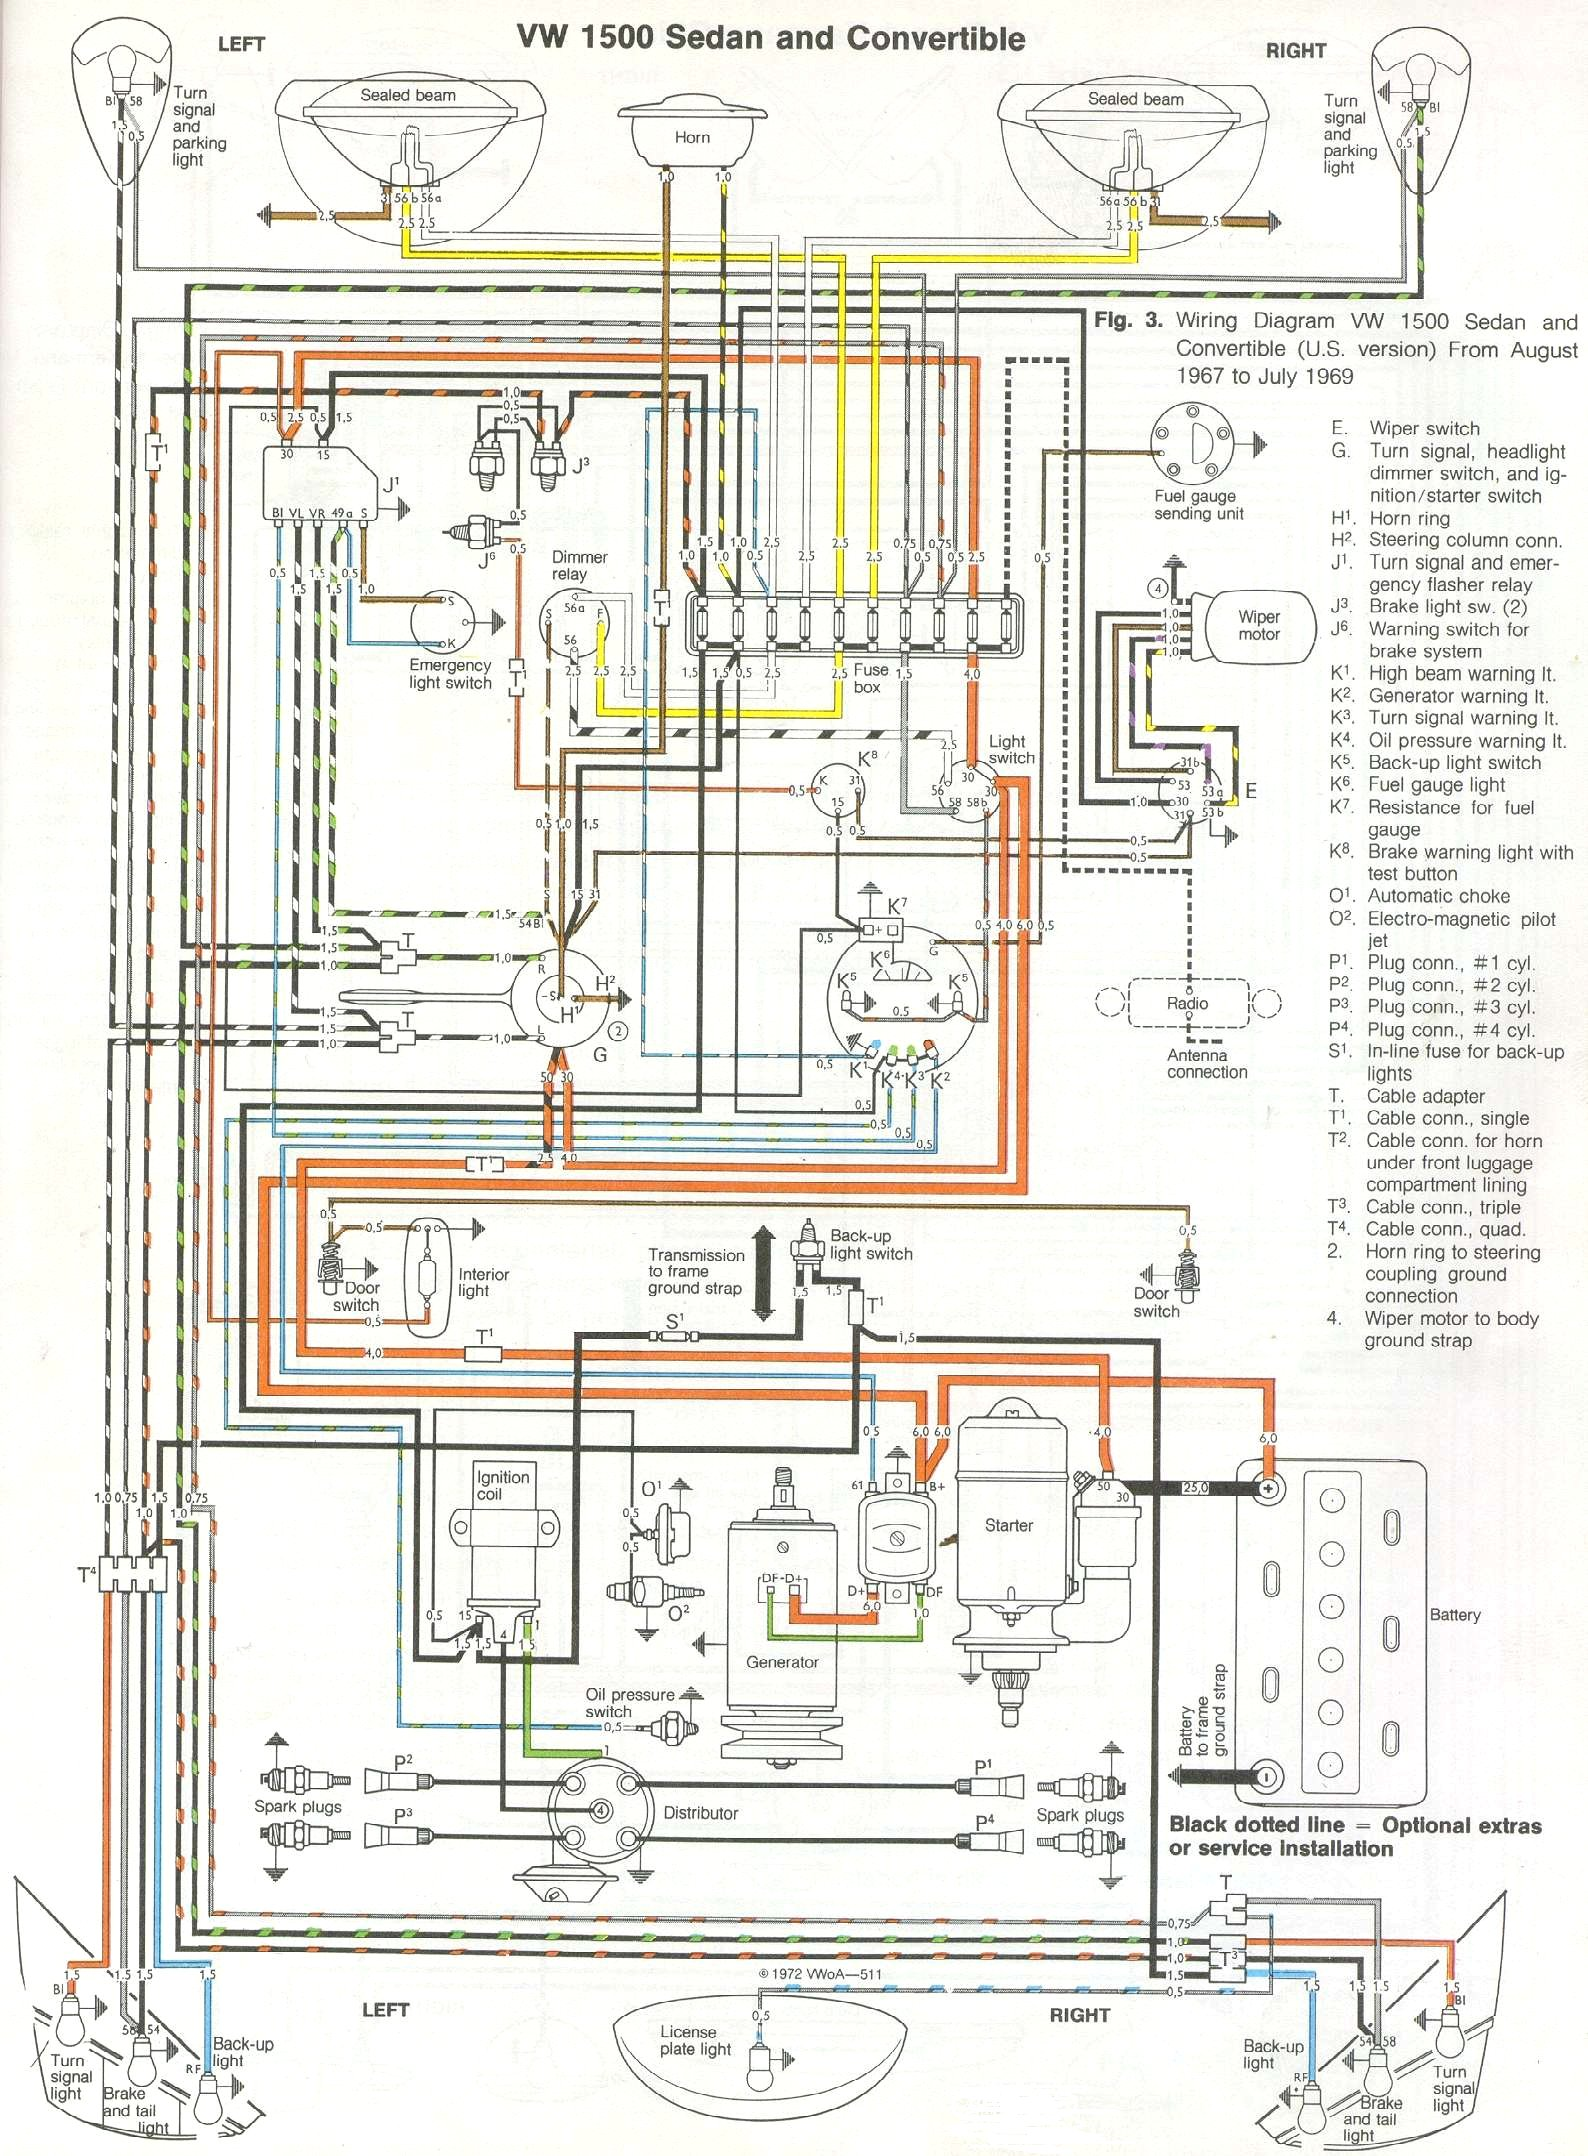 bug_6869 vw wiring harness diagram cj7 wiring harness diagram \u2022 wiring 1973 vw beetle fuse box diagram at crackthecode.co